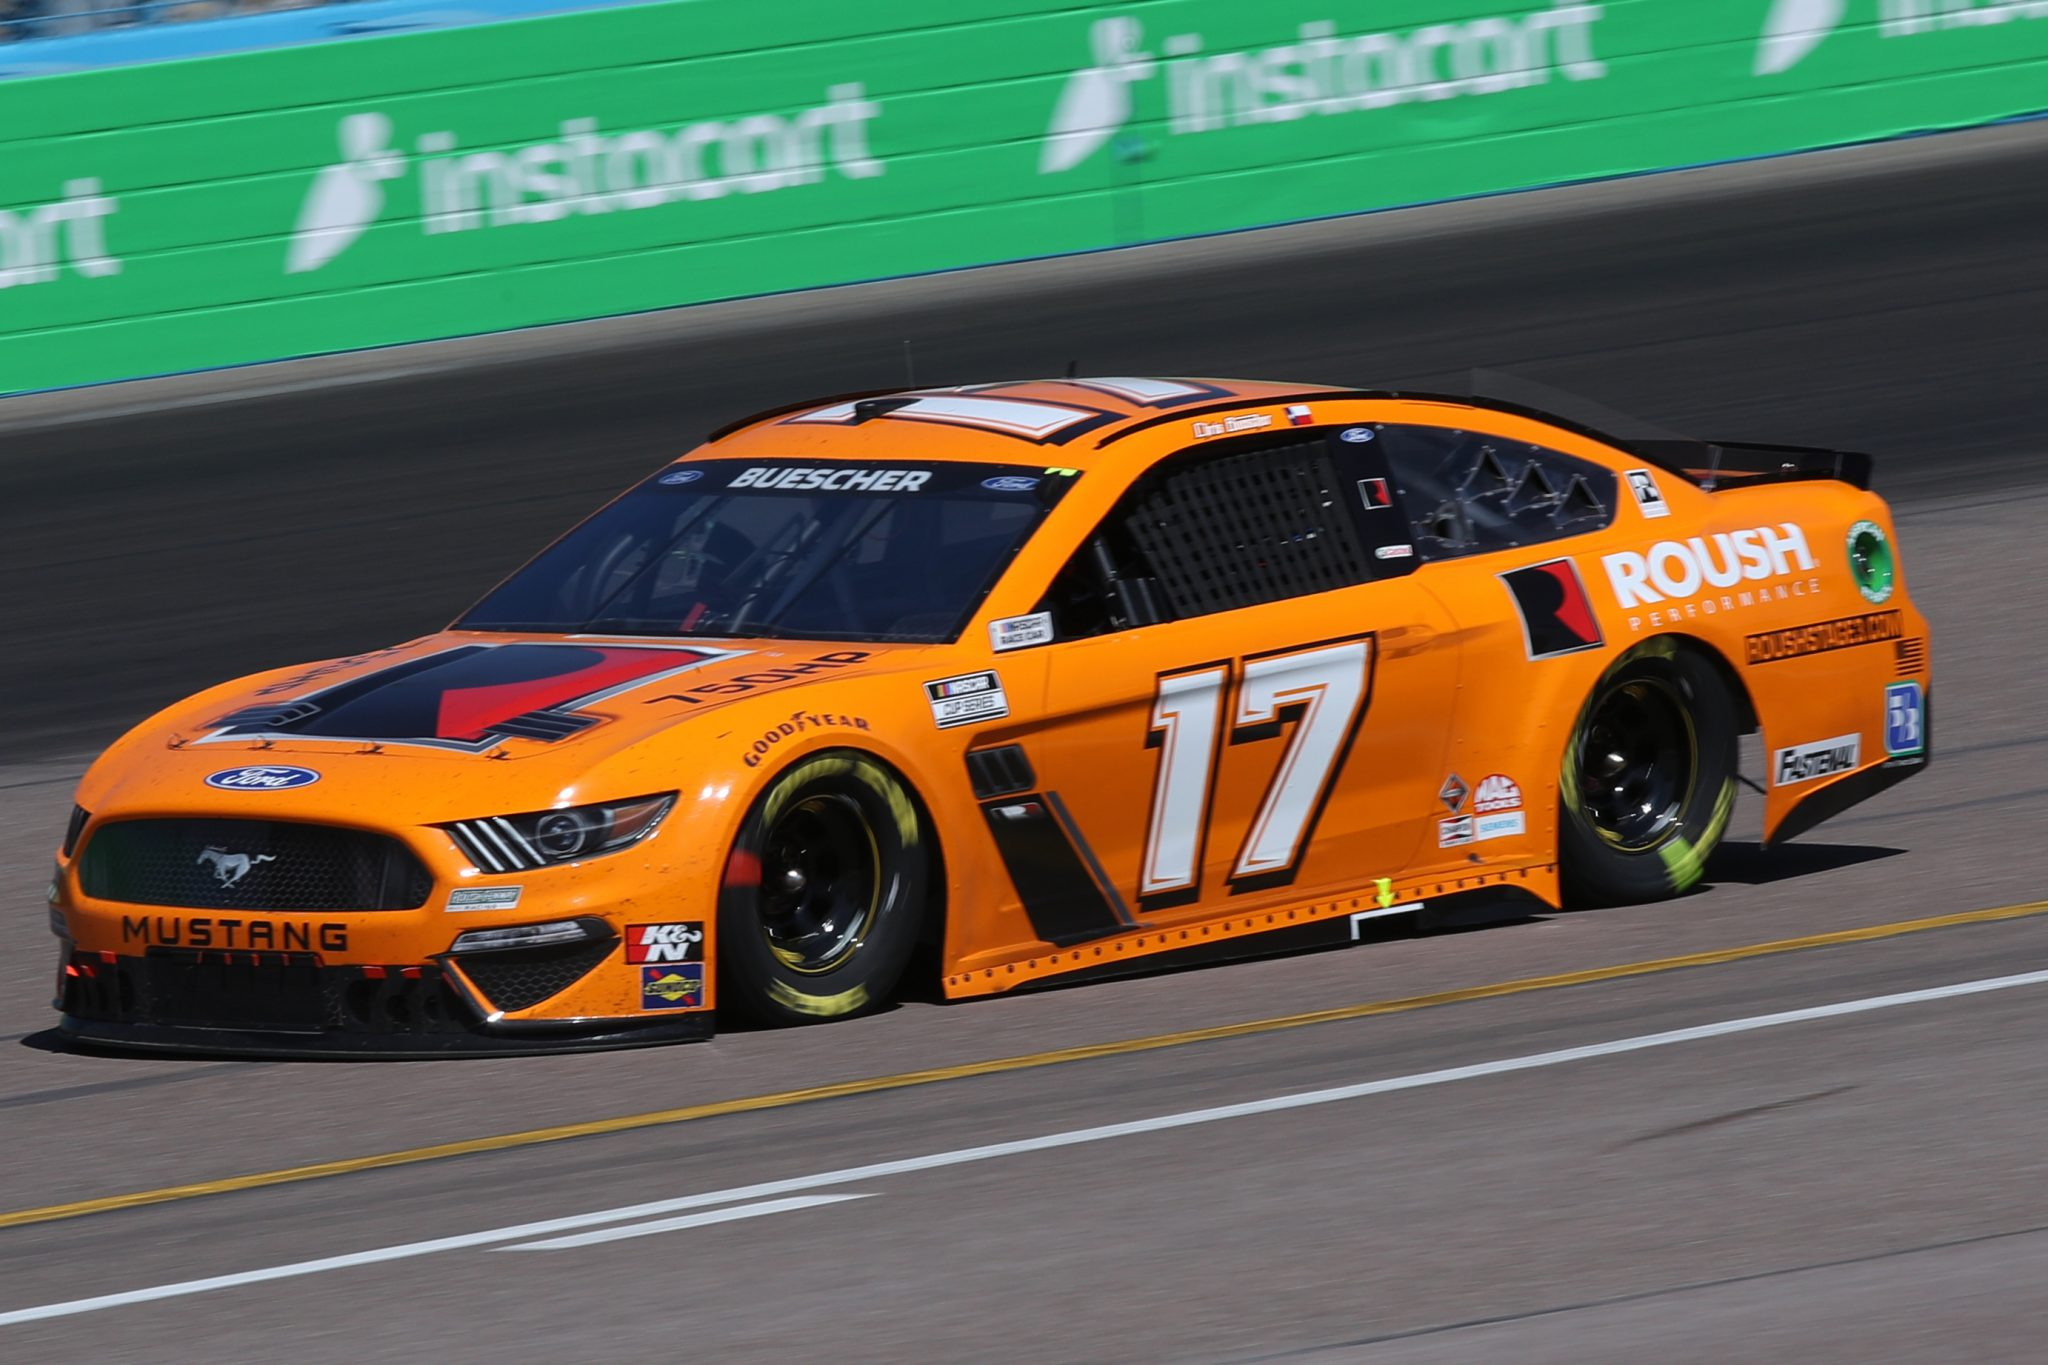 AVONDALE, ARIZONA - MARCH 14: Chris Buescher, driver of the #17 Roush Performance Ford, drives during the NASCAR Cup Series Instacart 500 at Phoenix Raceway on March 14, 2021 in Avondale, Arizona. (Photo by Sean Gardner/Getty Images) | Getty Images